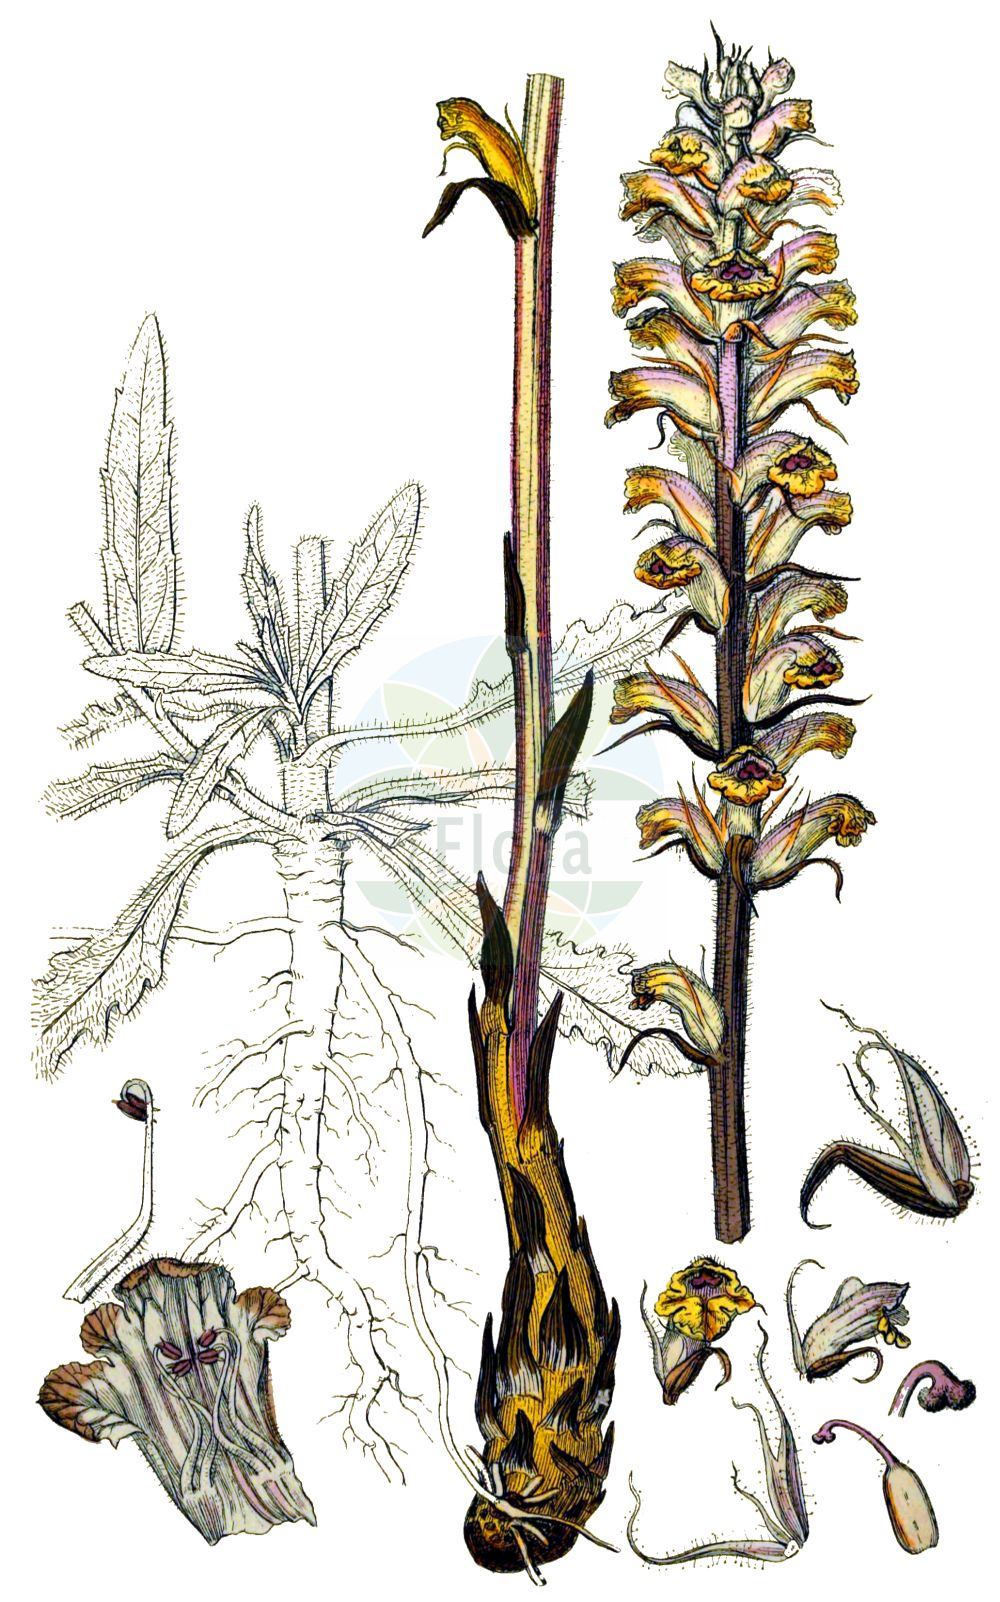 Historische Abbildung von Orobanche artemisiae-campestris (Panzer-Sommerwurz - Oxtongue Broomrape). Das Bild zeigt Blatt, Bluete, Frucht und Same. ---- Historical Drawing of Orobanche artemisiae-campestris (Panzer-Sommerwurz - Oxtongue Broomrape).The image is showing leaf, flower, fruit and seed.(Orobanche artemisiae-campestris,Panzer-Sommerwurz,Oxtongue Broomrape,Orobanche ambigua,Orobanche artemisiae,Orobanche artemisiae-campestris,Orobanche carotae,Orobanche centaurina,Orobanche hieracii-pilosellae,Orobanche lilacina,Orobanche loricata,Orobanche picridis,Orobanche picridis-hieracioidis,Orobanche santolinae,Orobanche scolymi,Panzer-Sommerwurz,Oxtongue Broomrape,Mugwort Broomrape,Orobanche,Sommerwurz,Broomrape,Orobanchaceae,Sommerwurzgewaechse,Broomrape family,Blatt,Bluete,Frucht,Same,leaf,flower,fruit,seed,Sowerby (1790-1813))